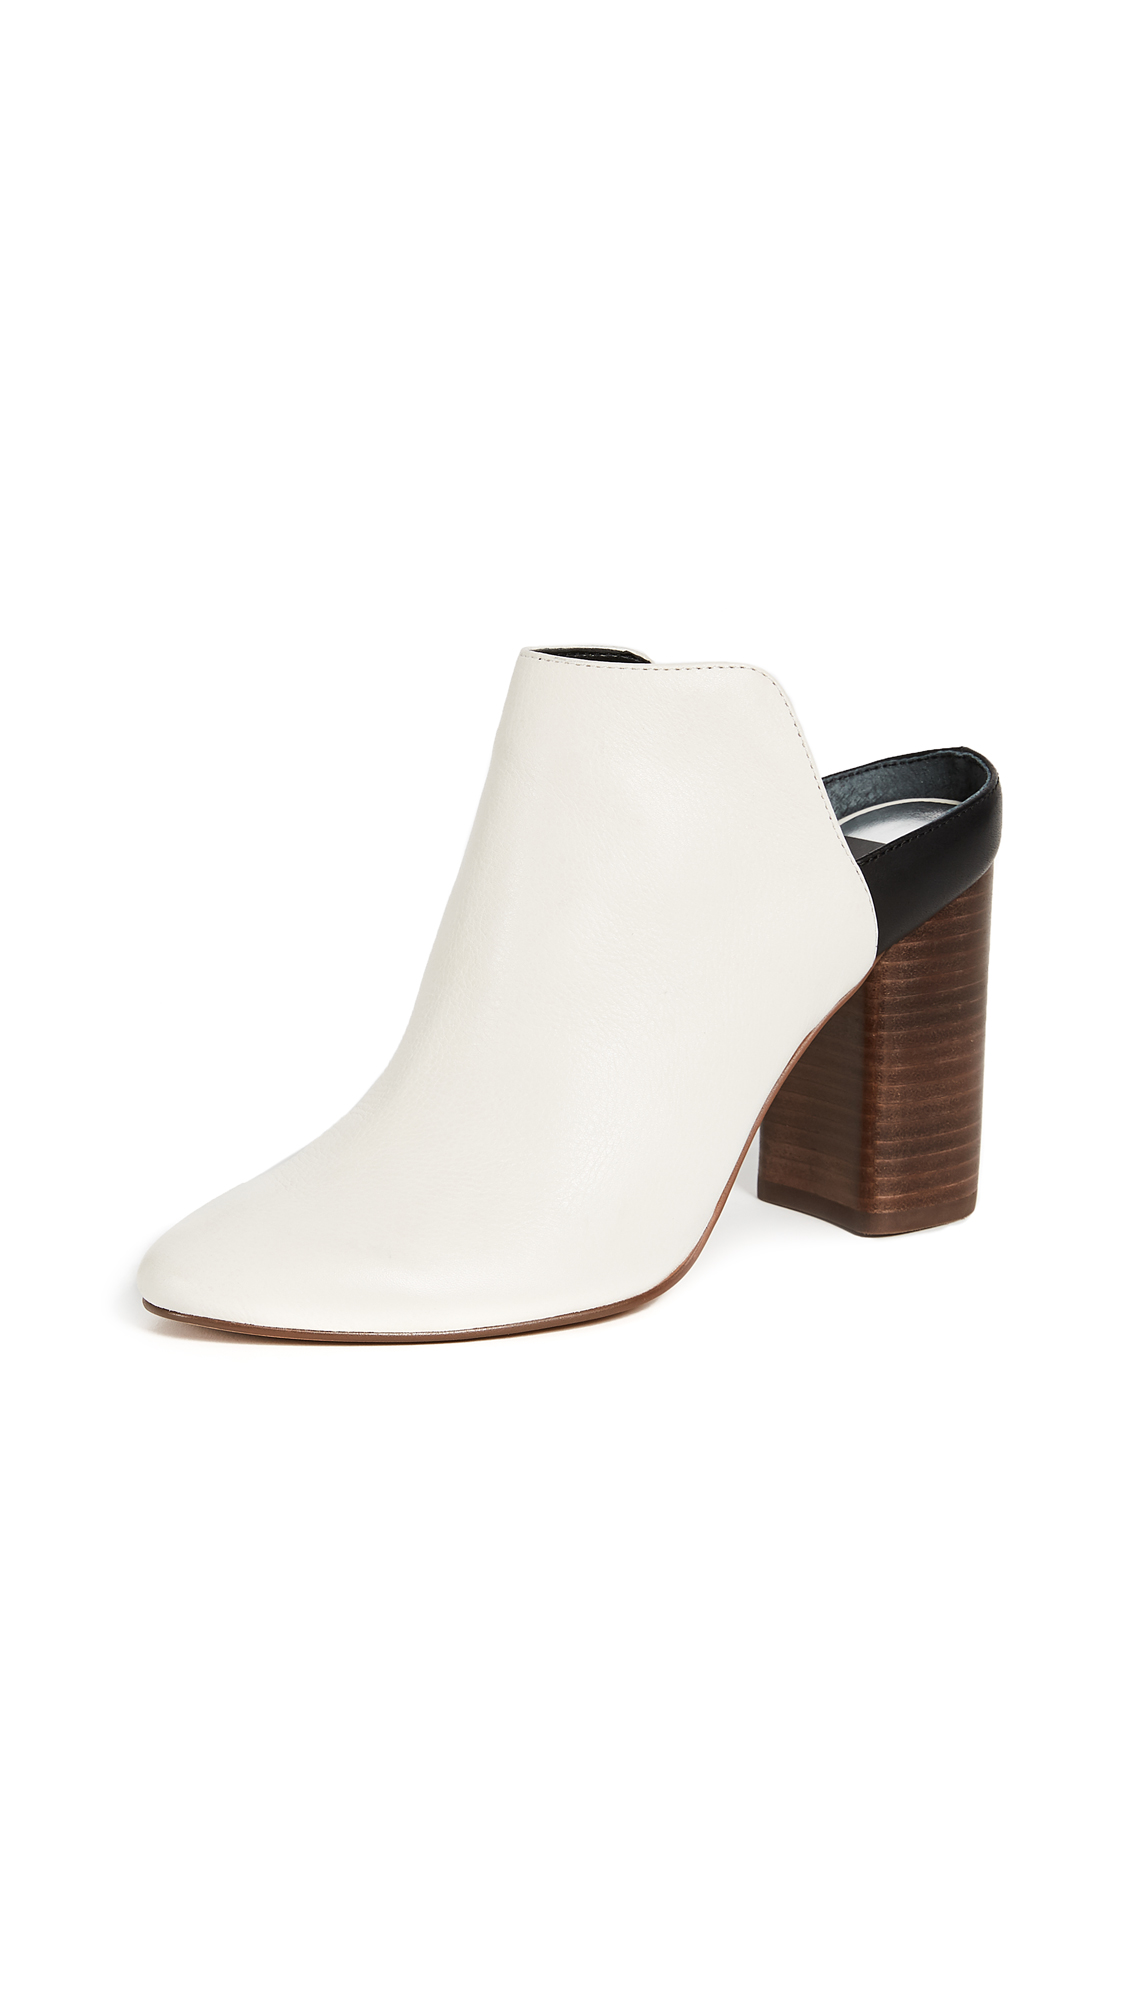 Dolce Vita Renly Backless Mules - Off White